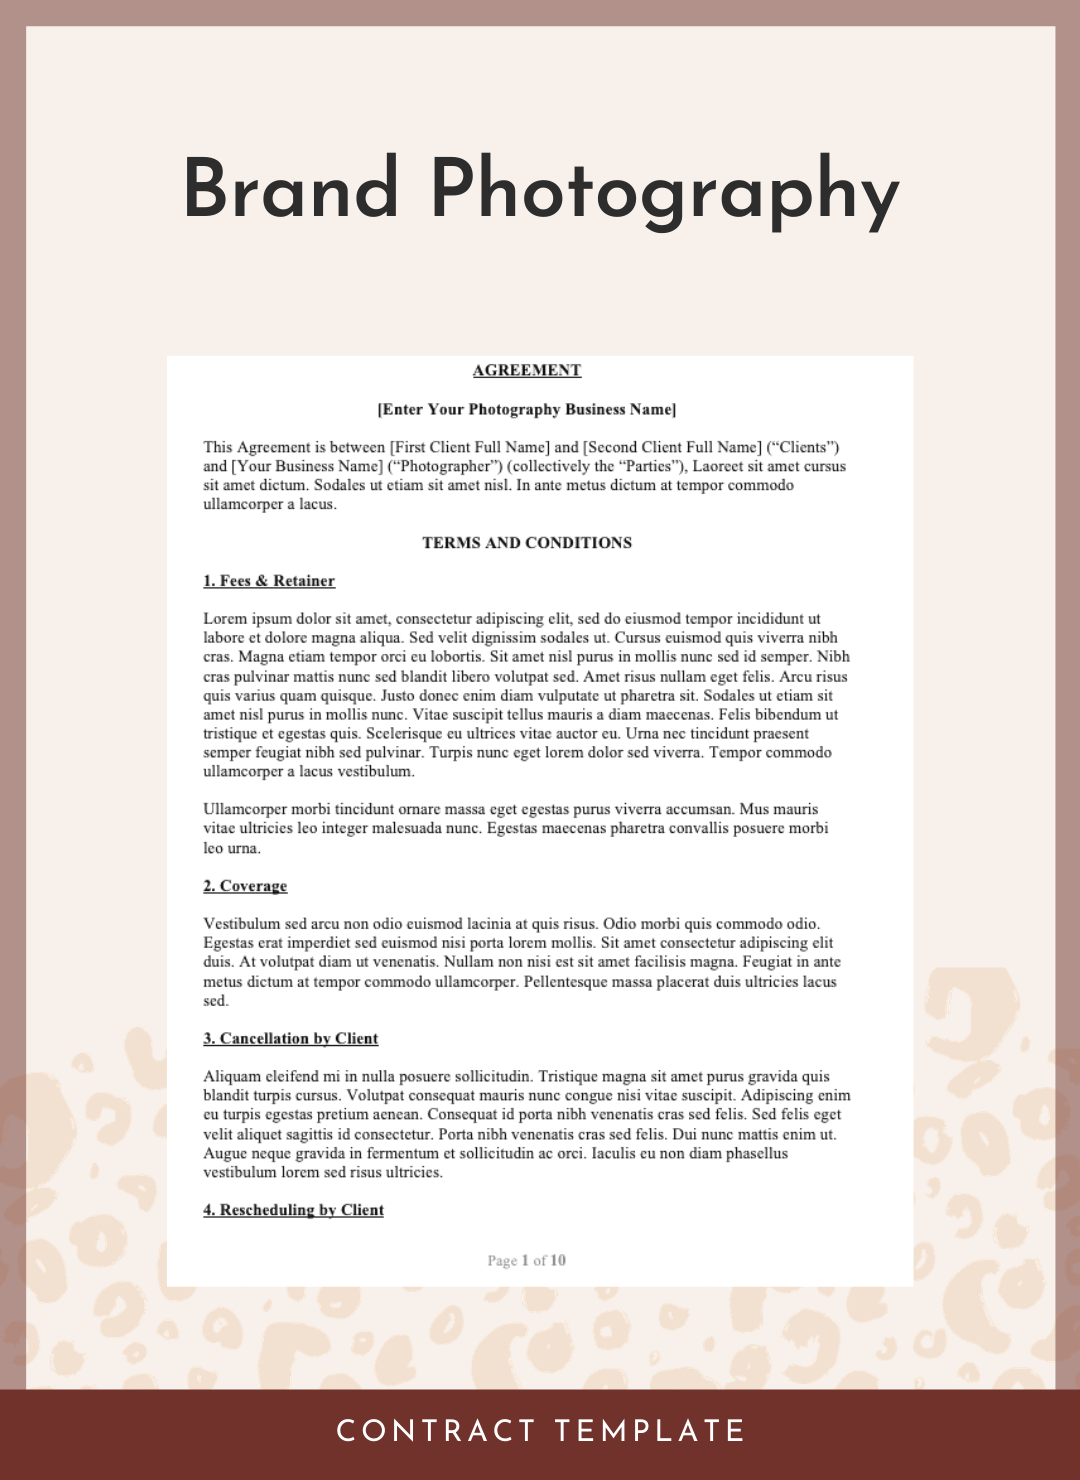 Brand & Commercial Photography Contract